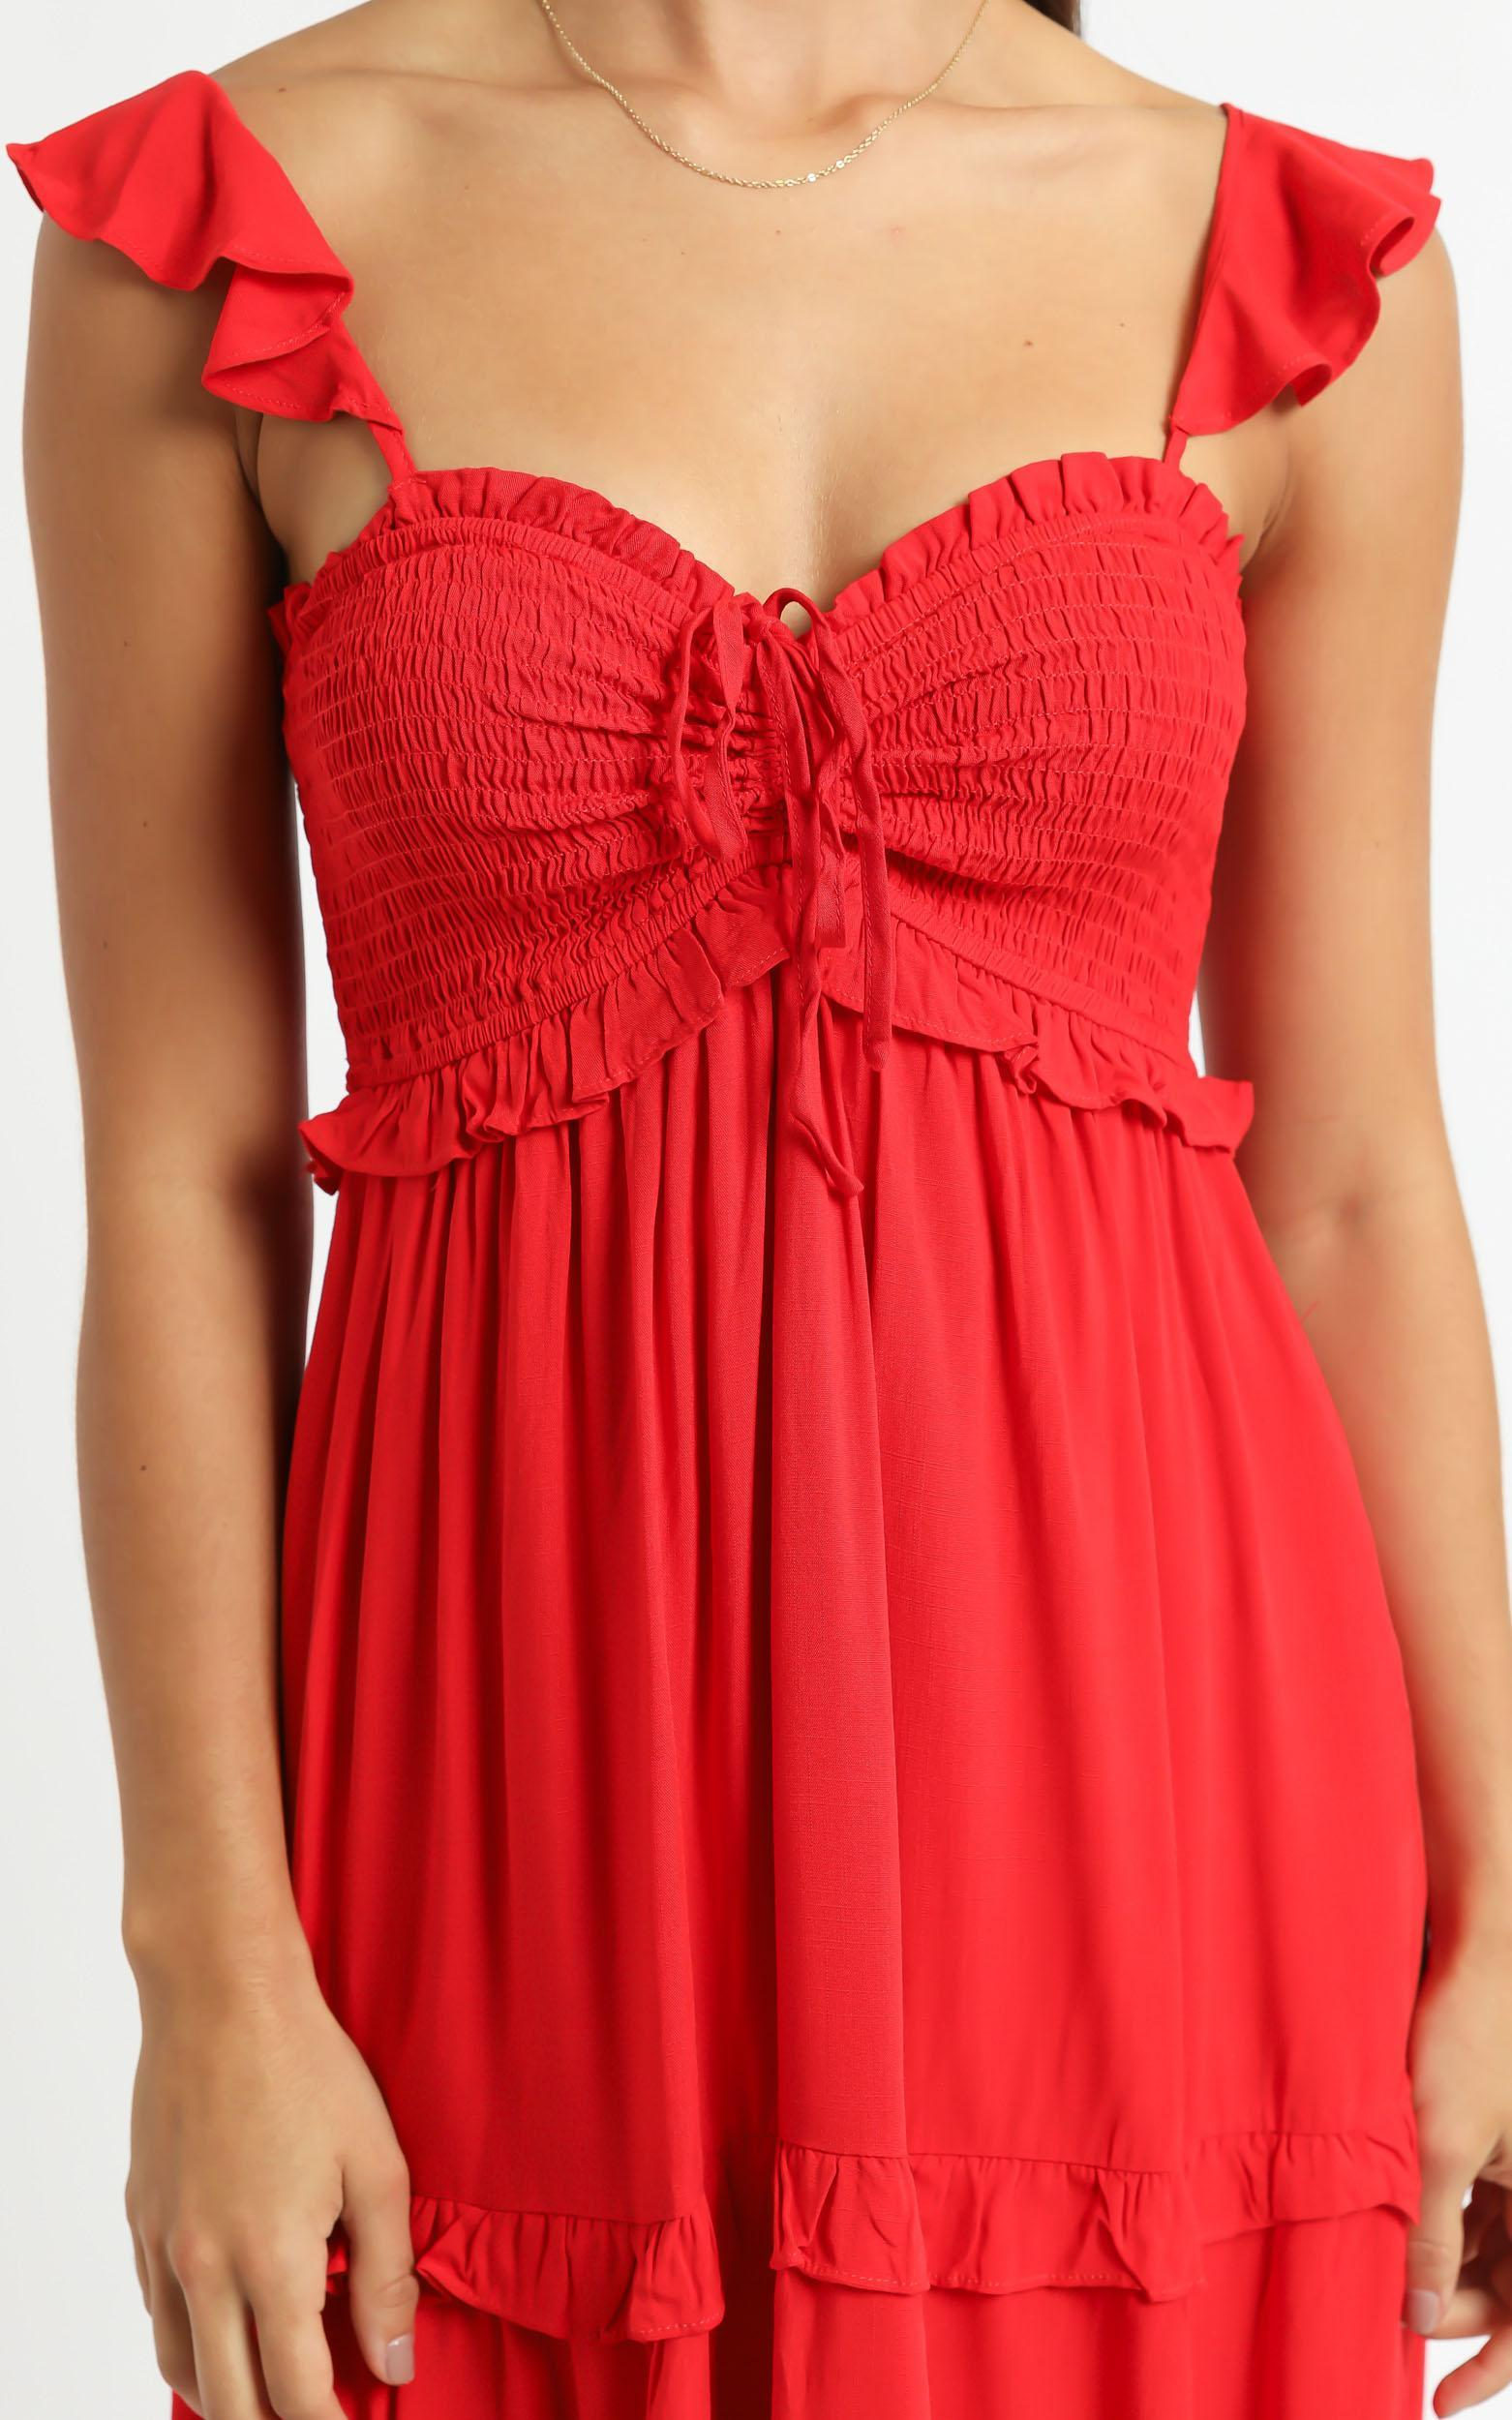 Good For The Soul Dress In Red - 6 (XS), Red, hi-res image number null